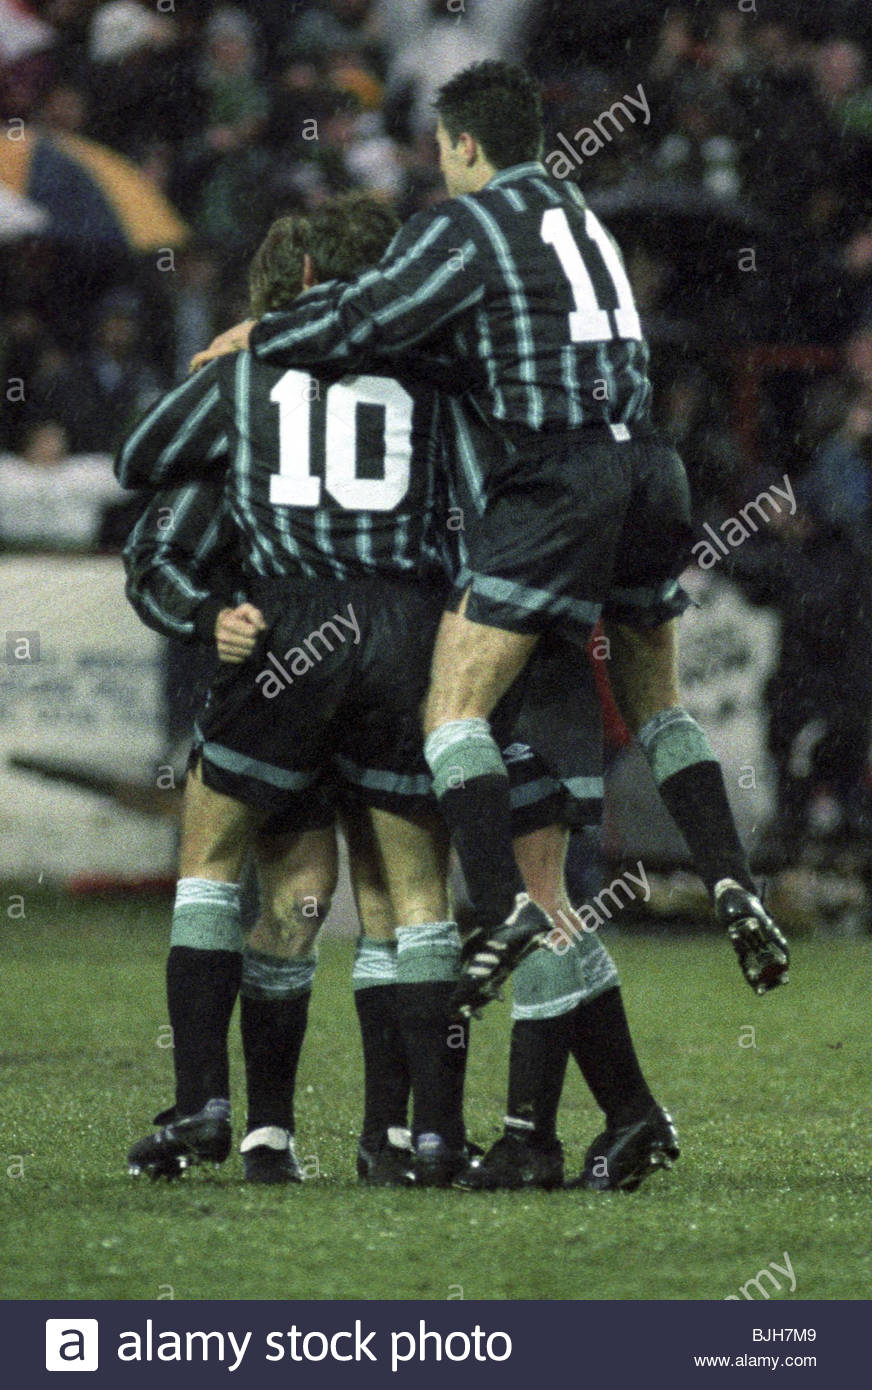 23/01/93 SCOTTISH PREMIER DIVISION AIRDRIE v CELTIC (0-1) BROOMFIELD - AIRDRIE Tommy Coyne (10) is congratulated - Stock Image